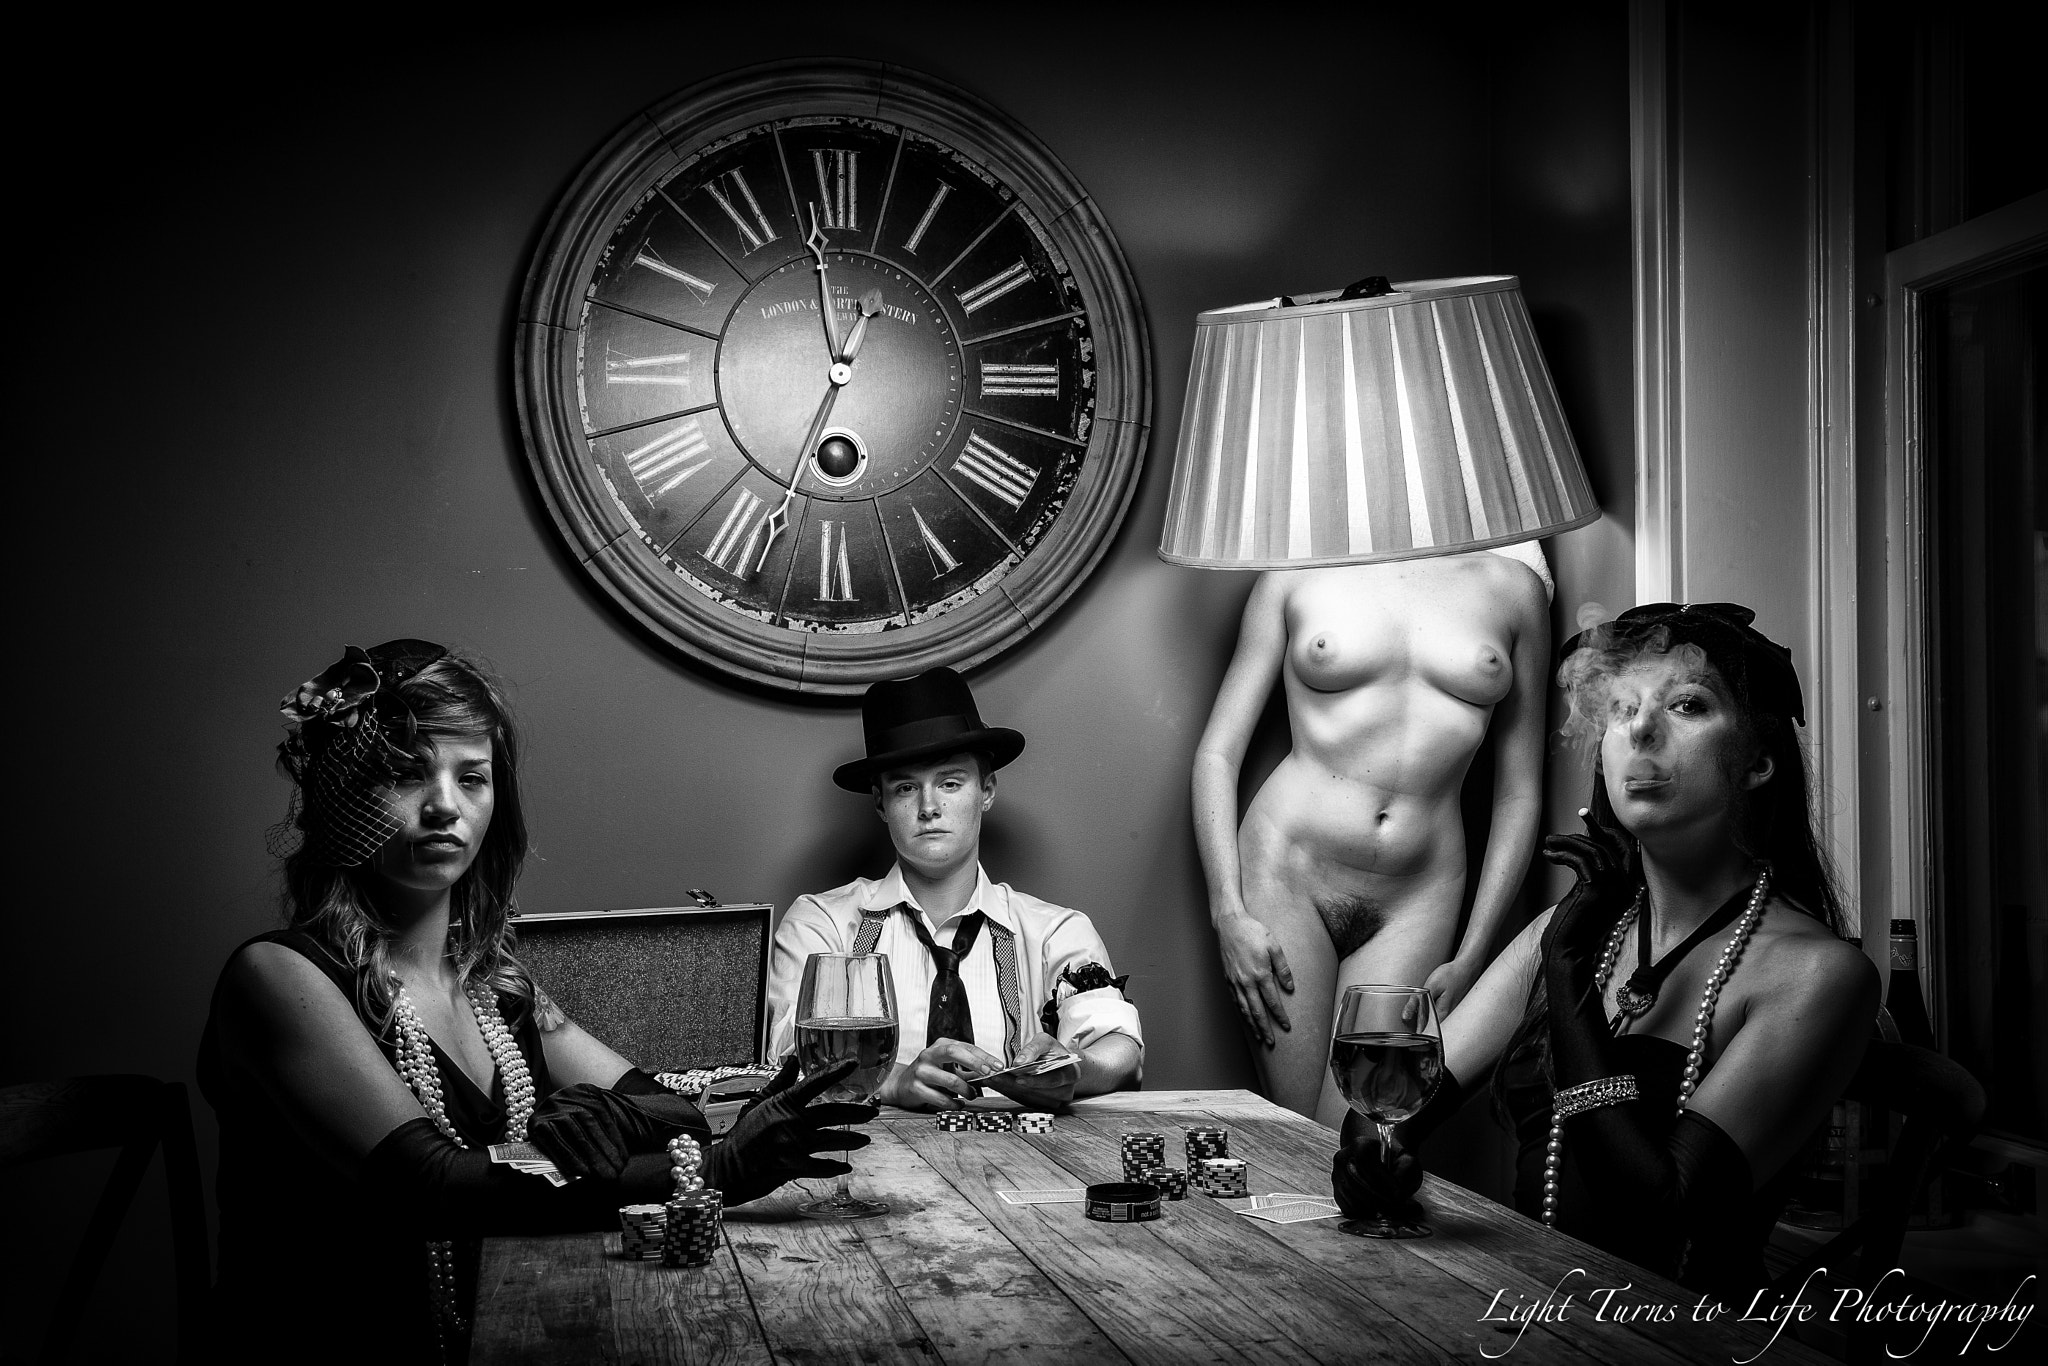 Photograph Strip Poker Night by Vinson Smith on 500px